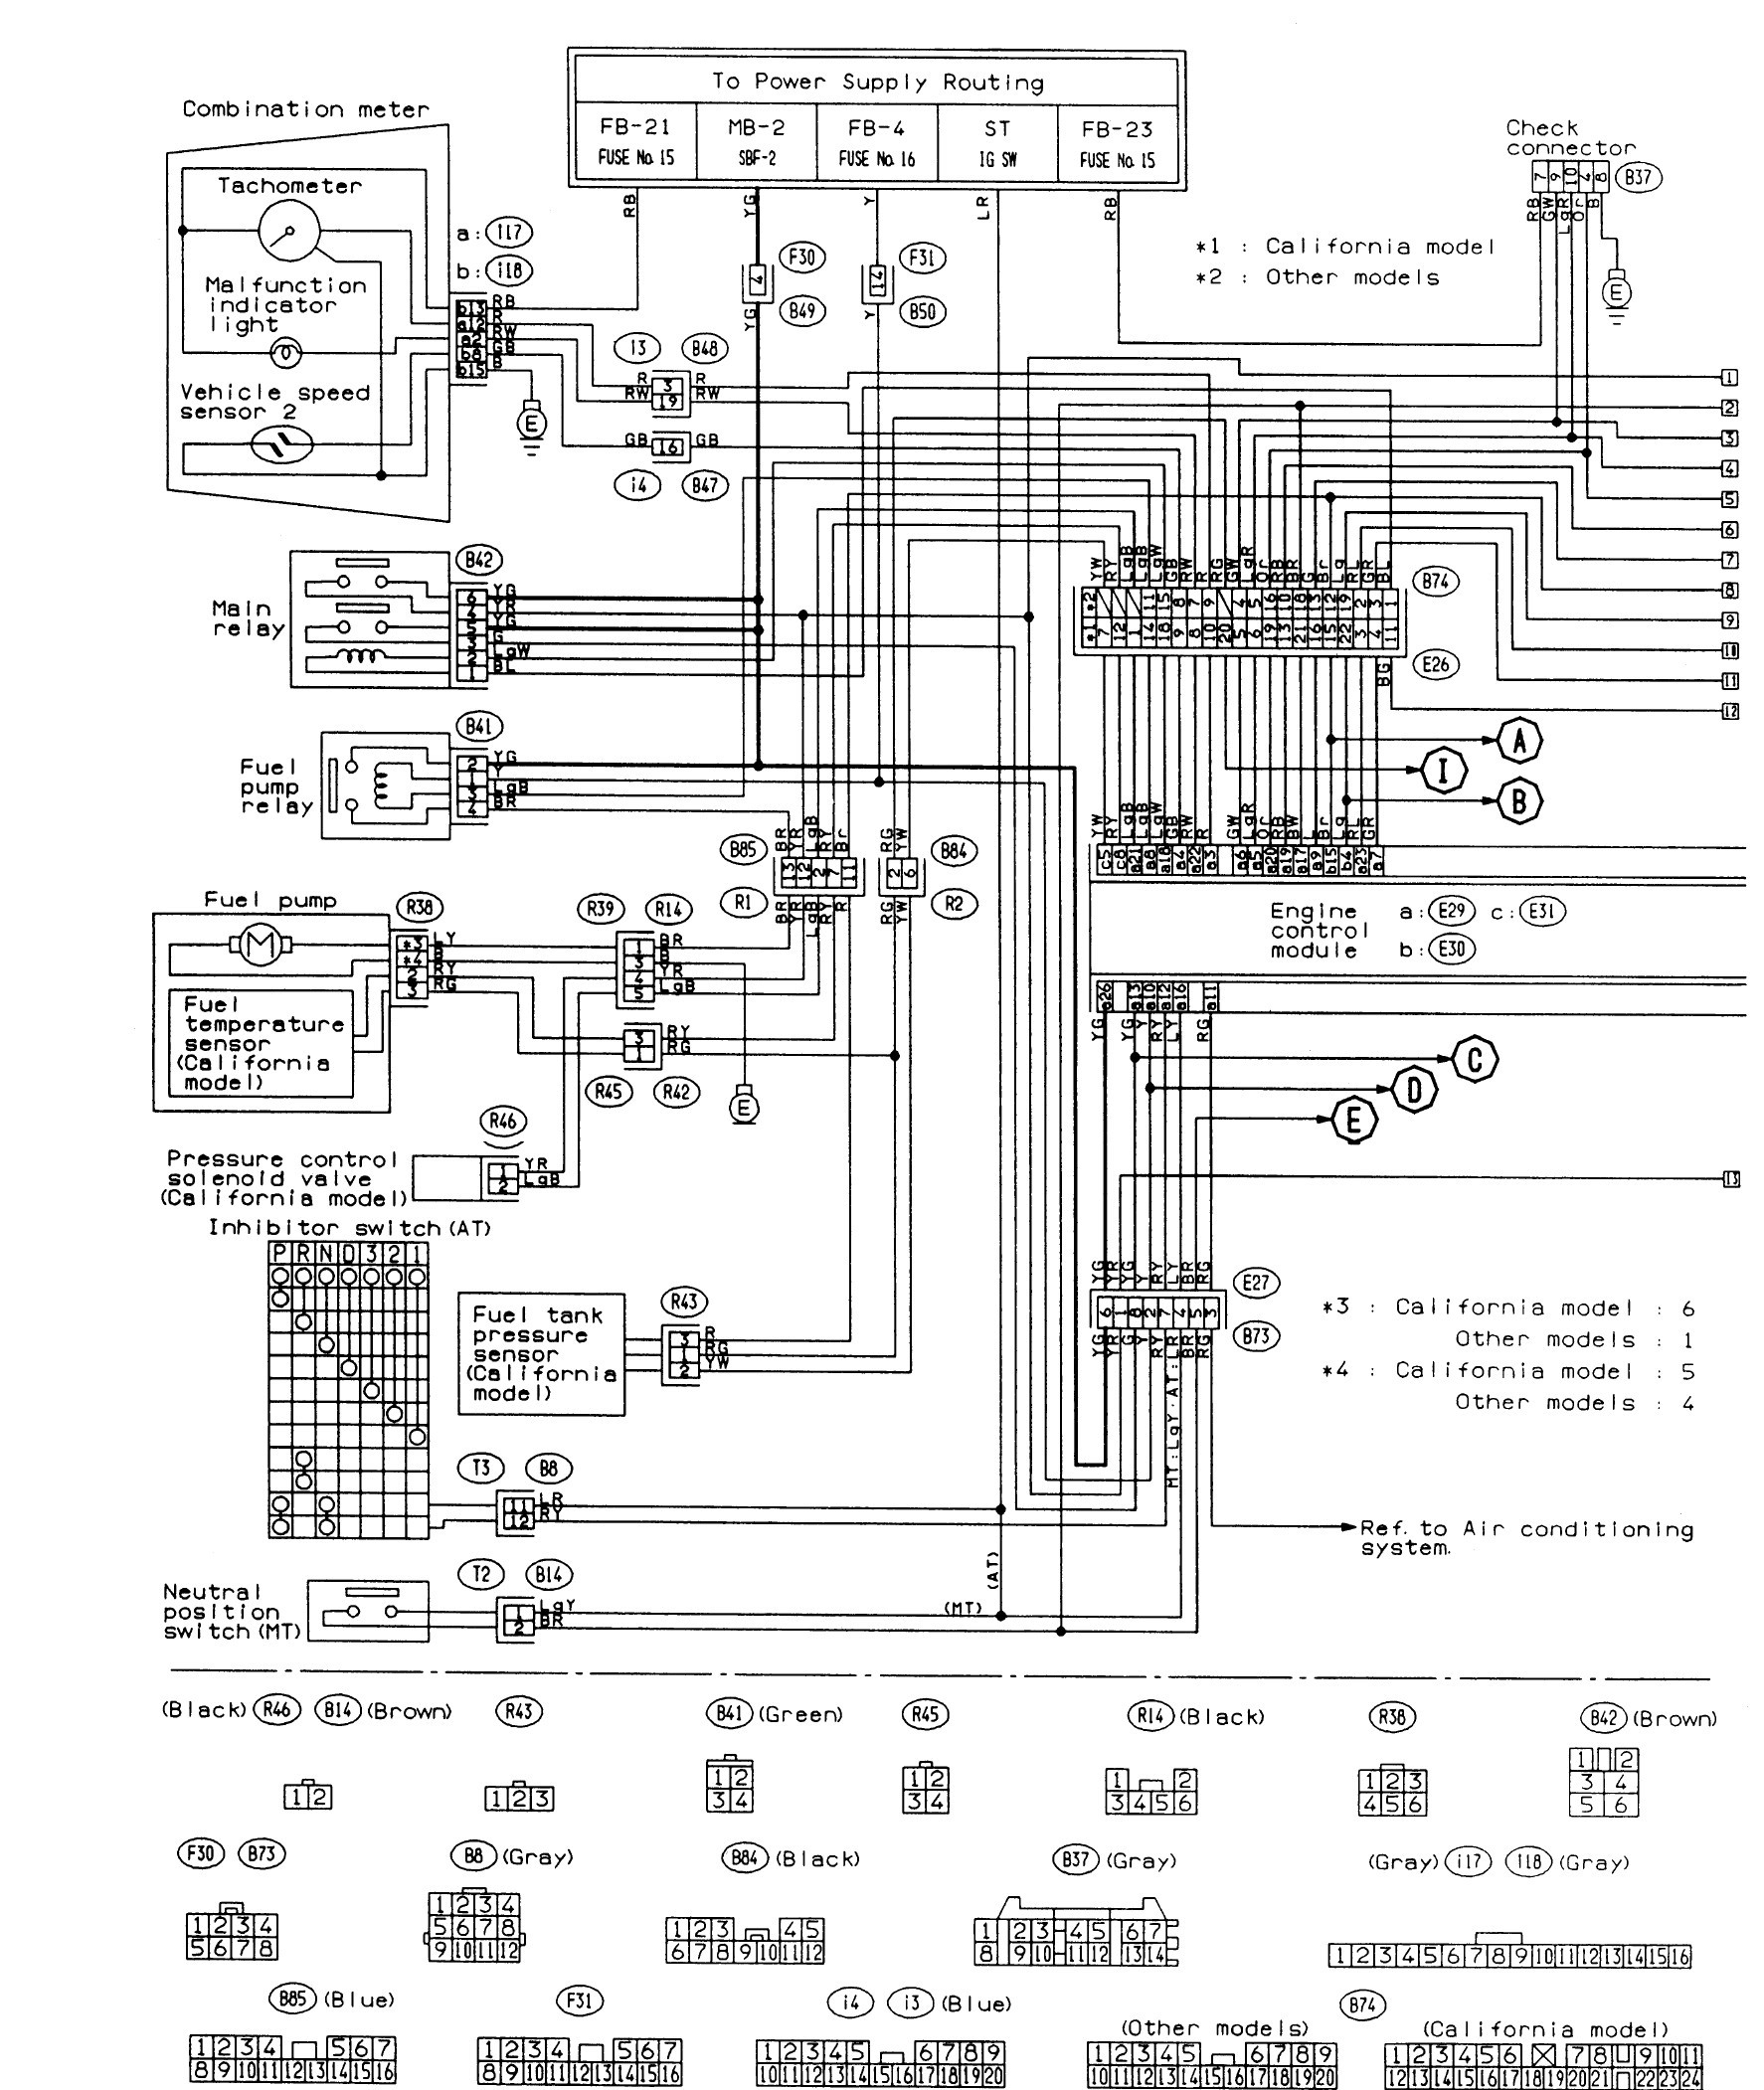 Subaru hub wiring diagramhub wiring diagrams subaru engine compartment wiring diagram 1995 wiring library subaru hub wiring diagram wiring library wire diagram asfbconference2016